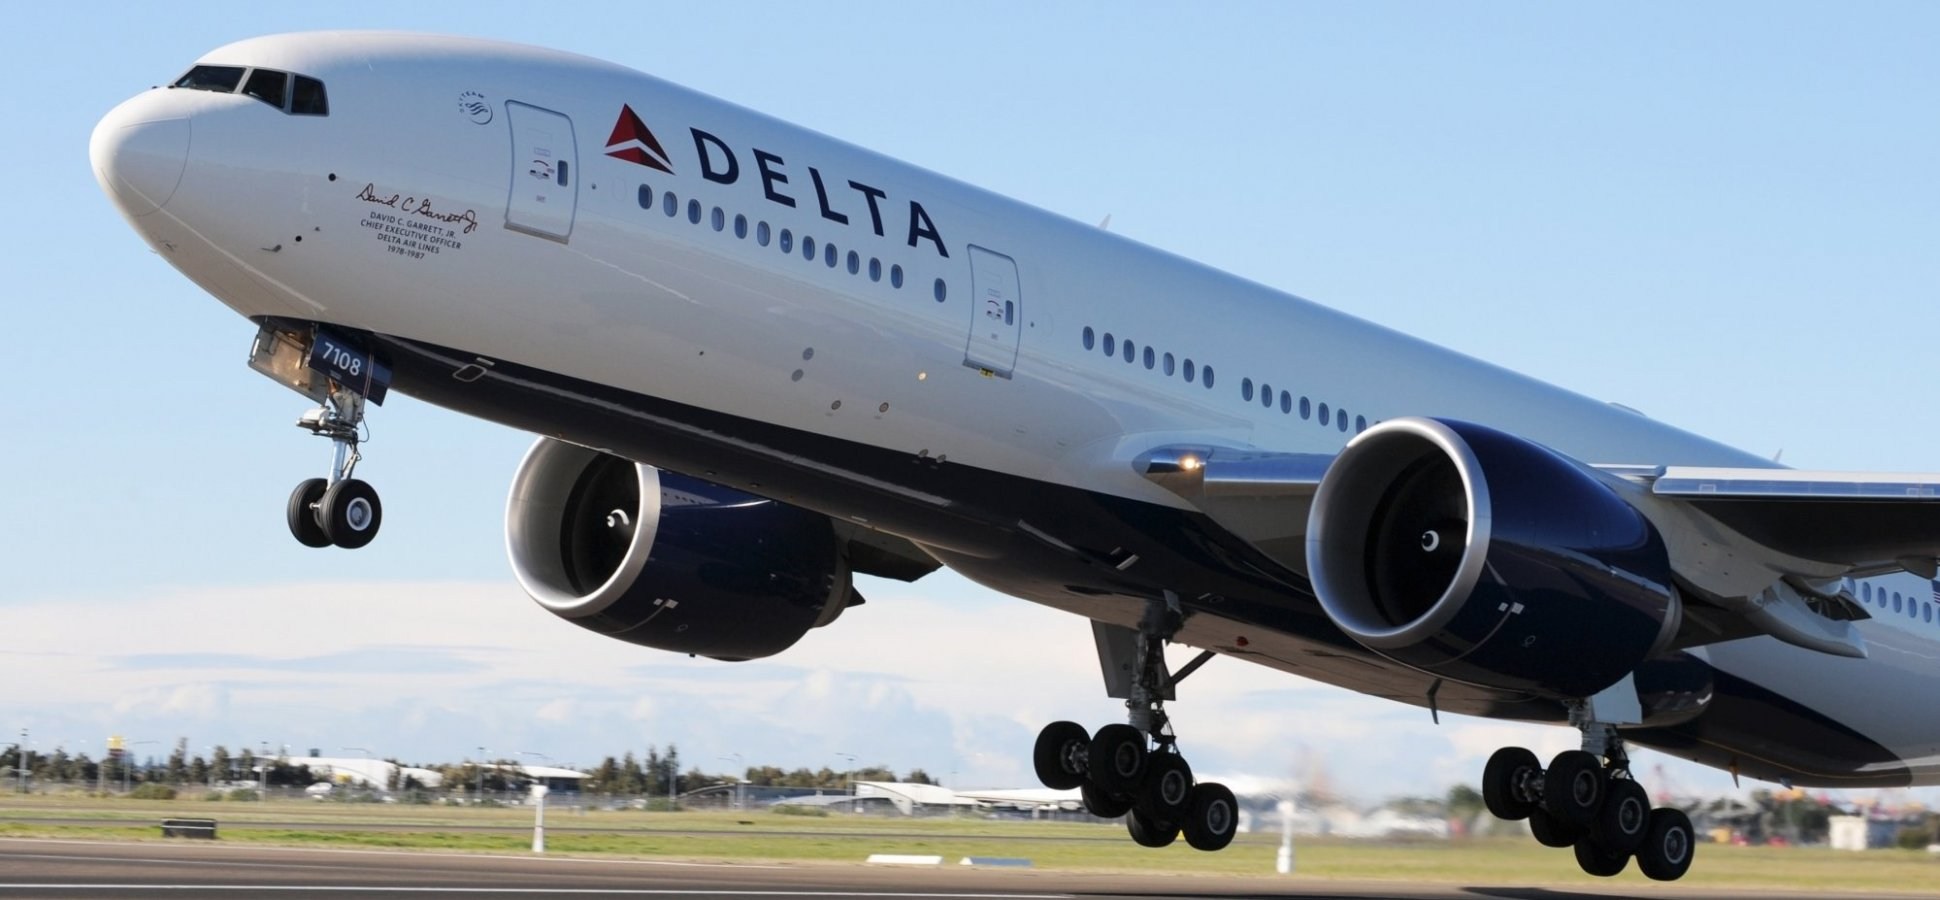 Delta Just Made a Stunning Passenger-Friendly Announcement That Puts Other Airlines To Shame